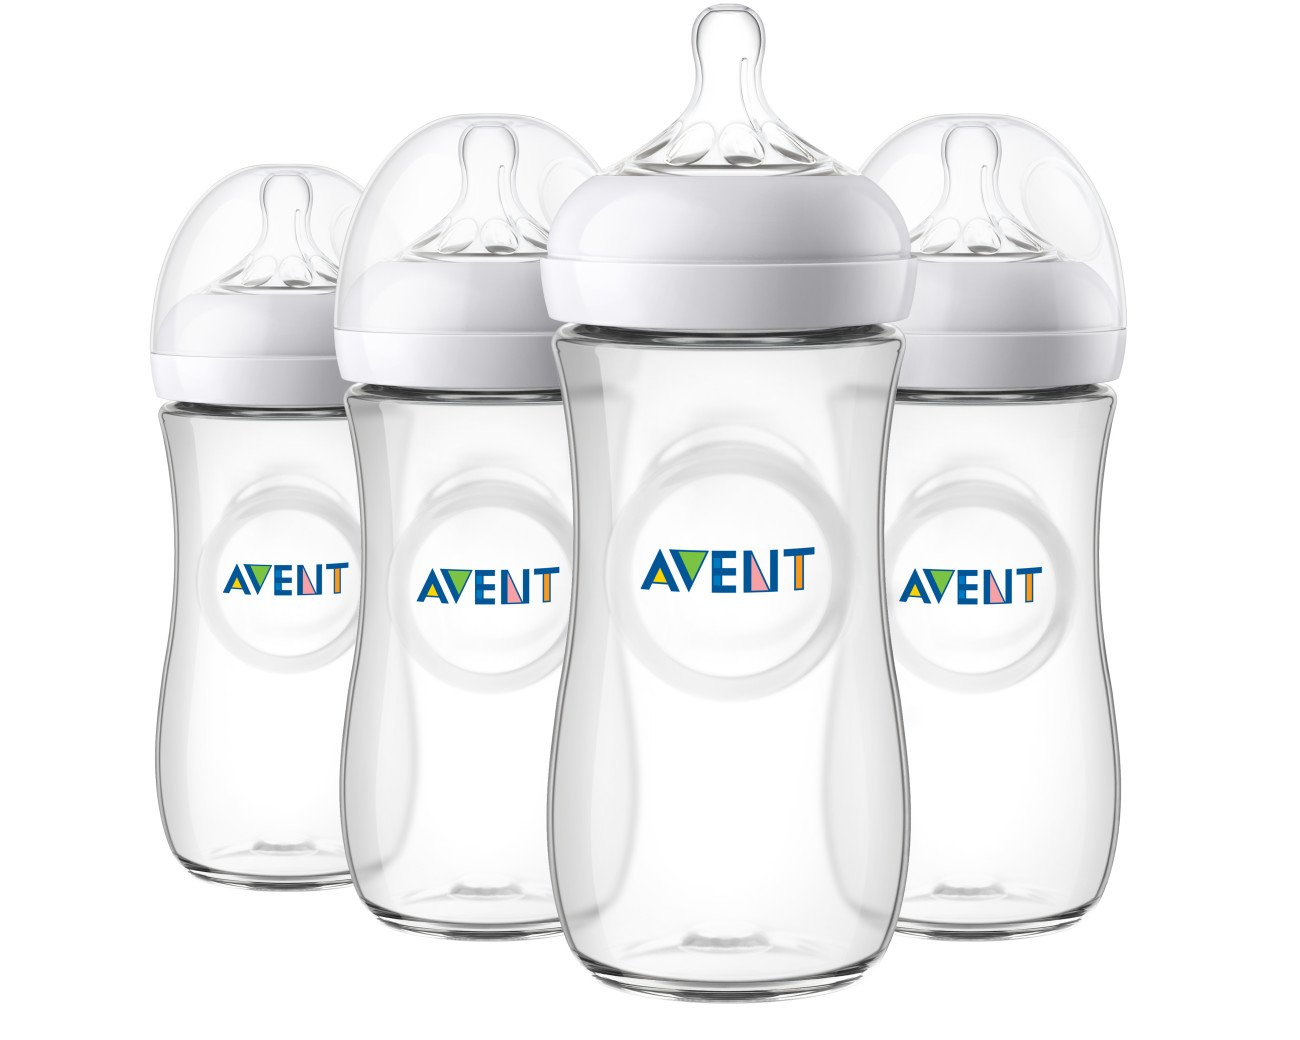 Philips Avent Natural Baby Bottle, Clear, 11oz, 4pk, SCF016/47 by Philips AVENT